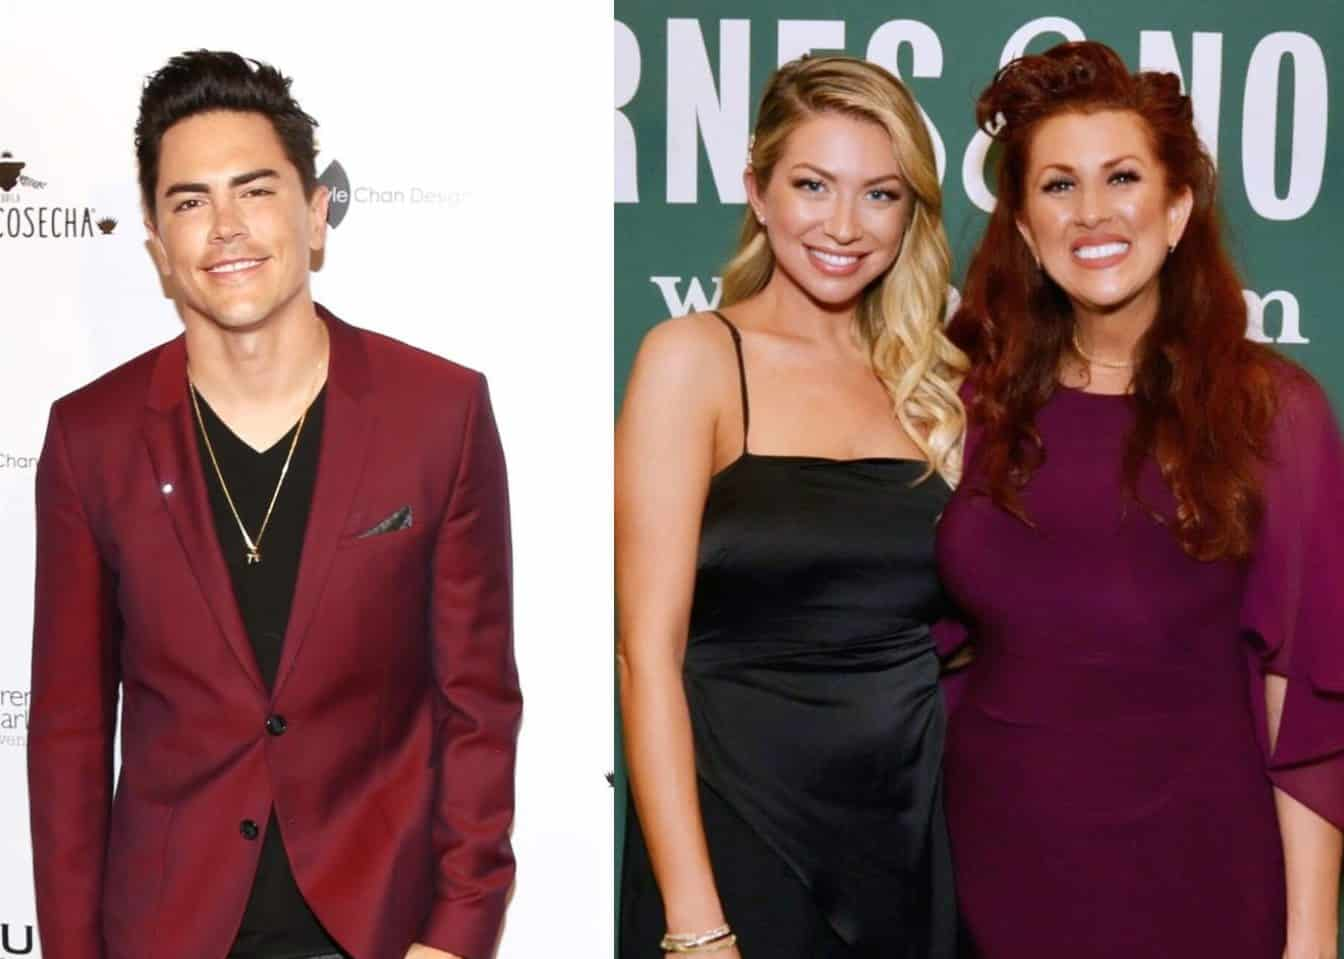 Tom Sandoval Responds to Criticism from Stassi's Mom Dayna Schroeder About Him Being Rude to Her at Vanderpump Rules Costars Jax and Brittany's Wedding